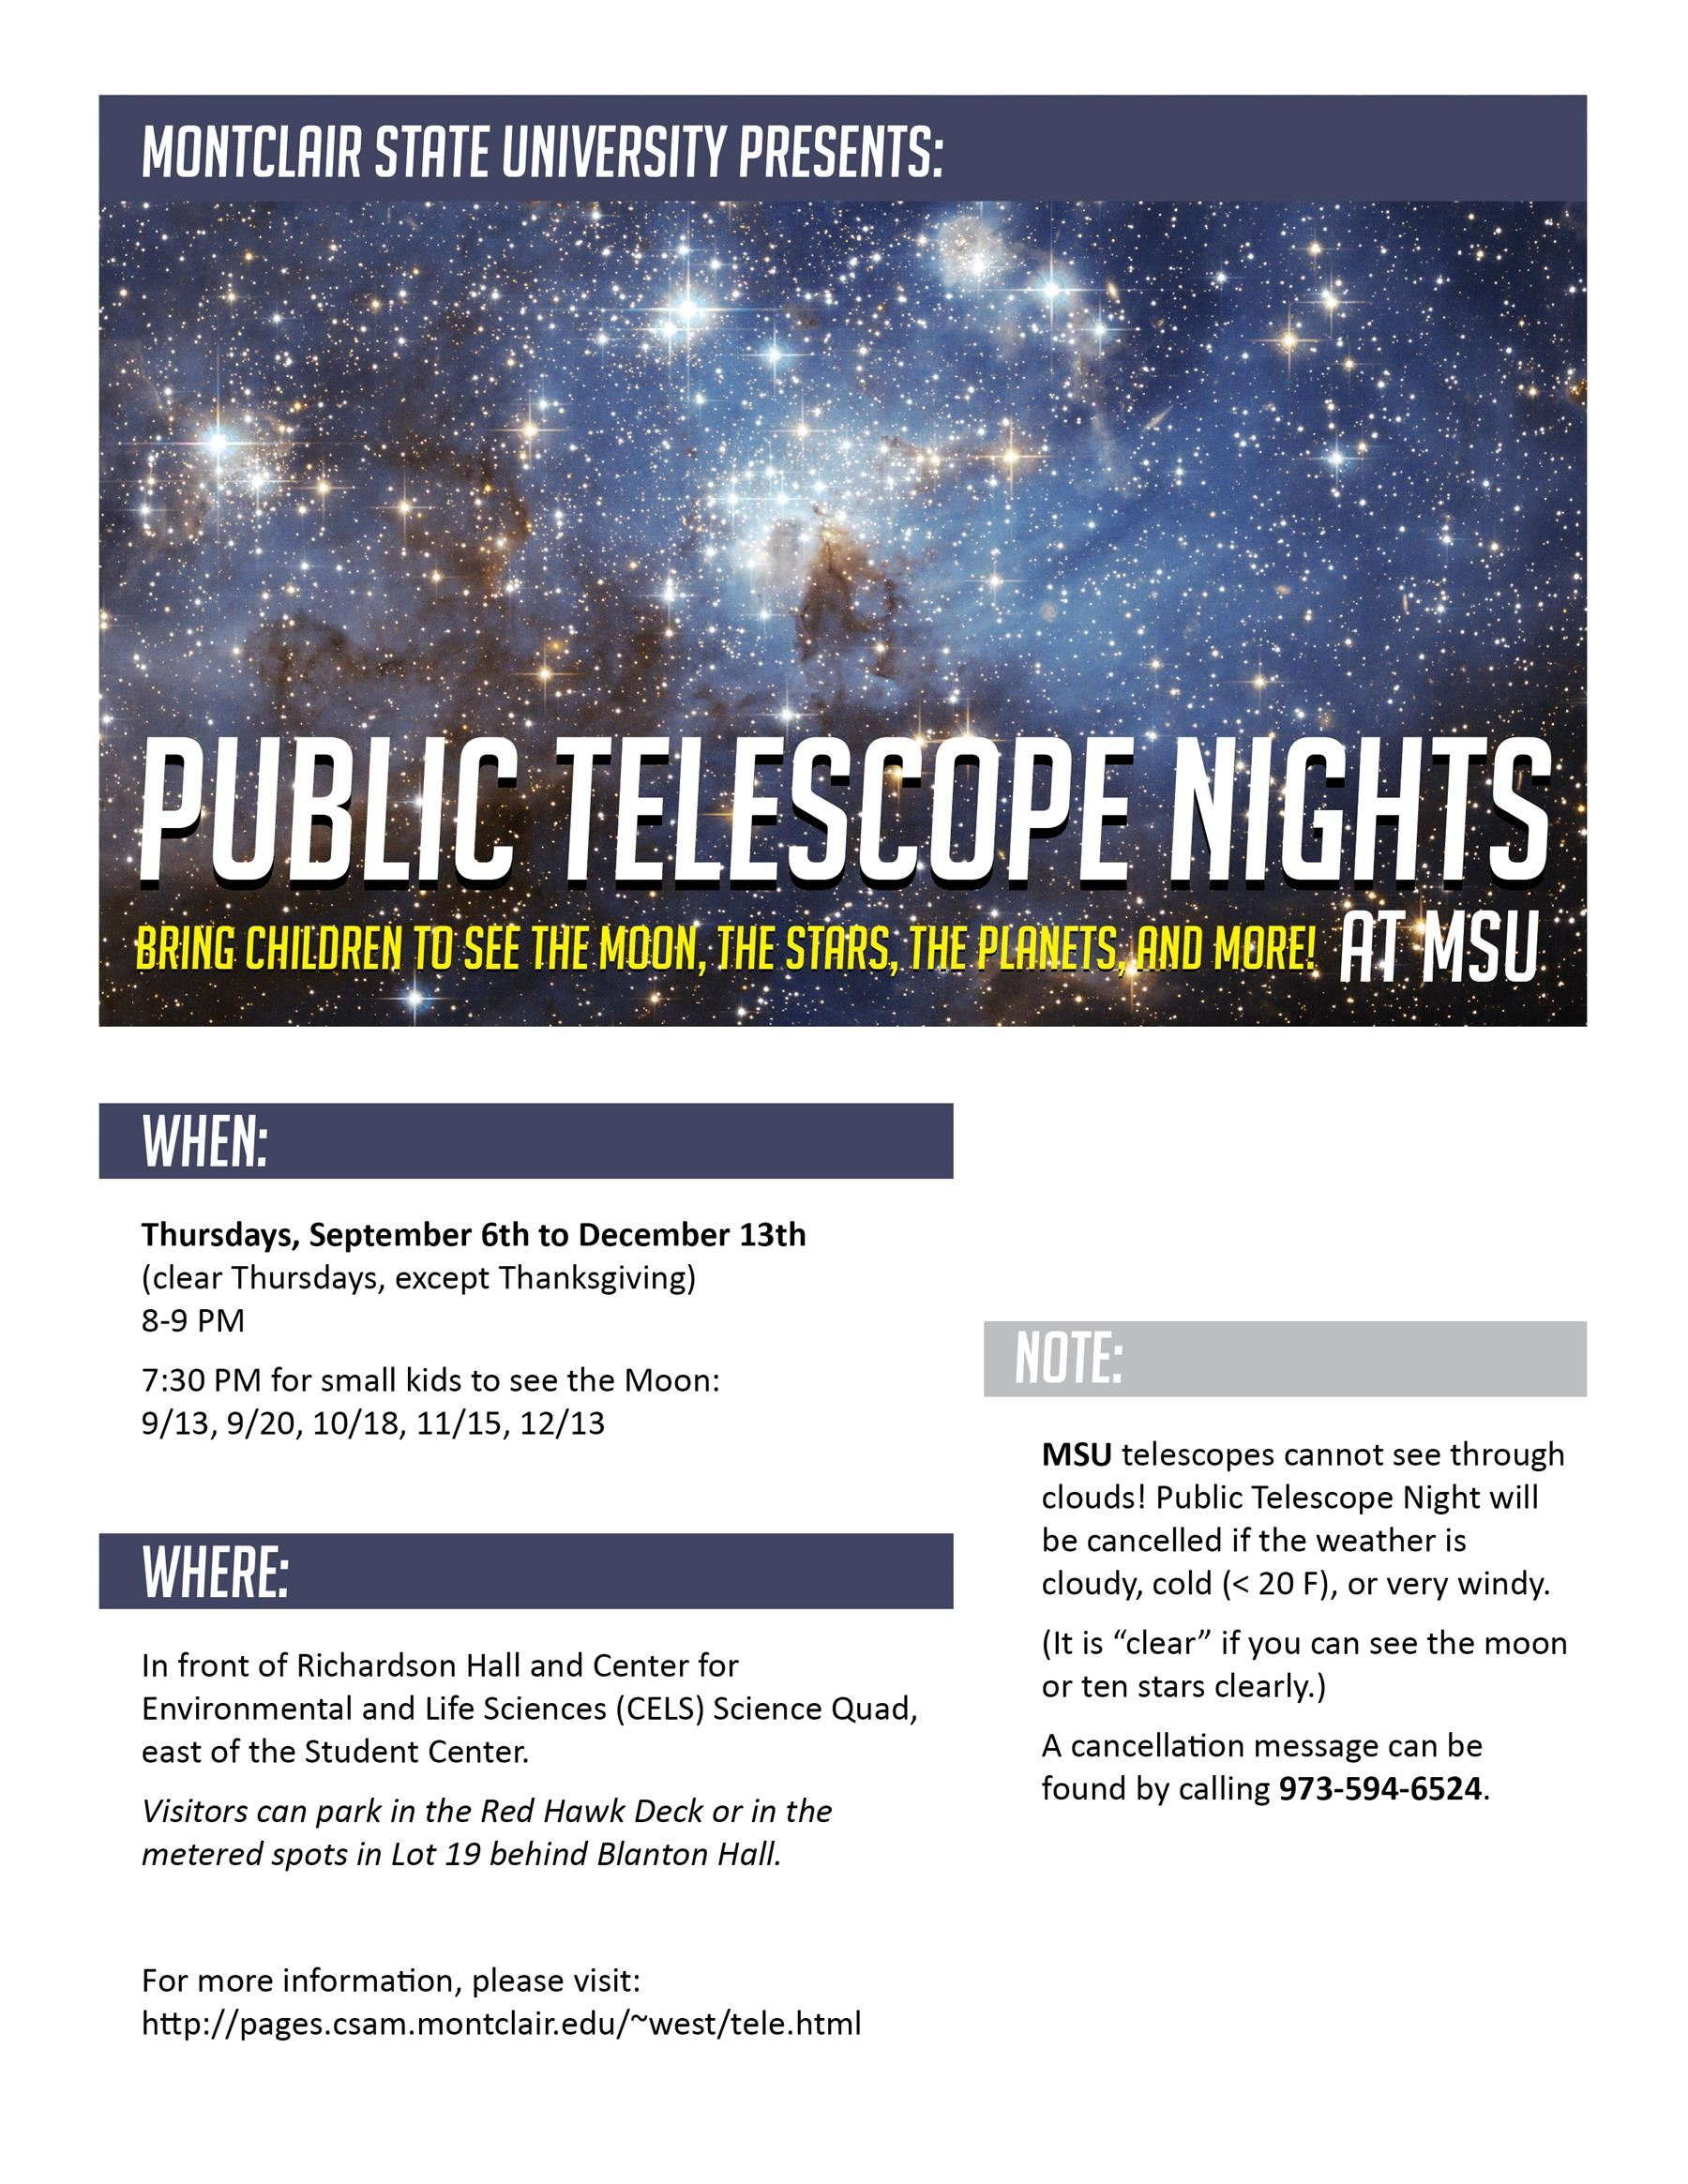 Public Telescope Nights at MSU